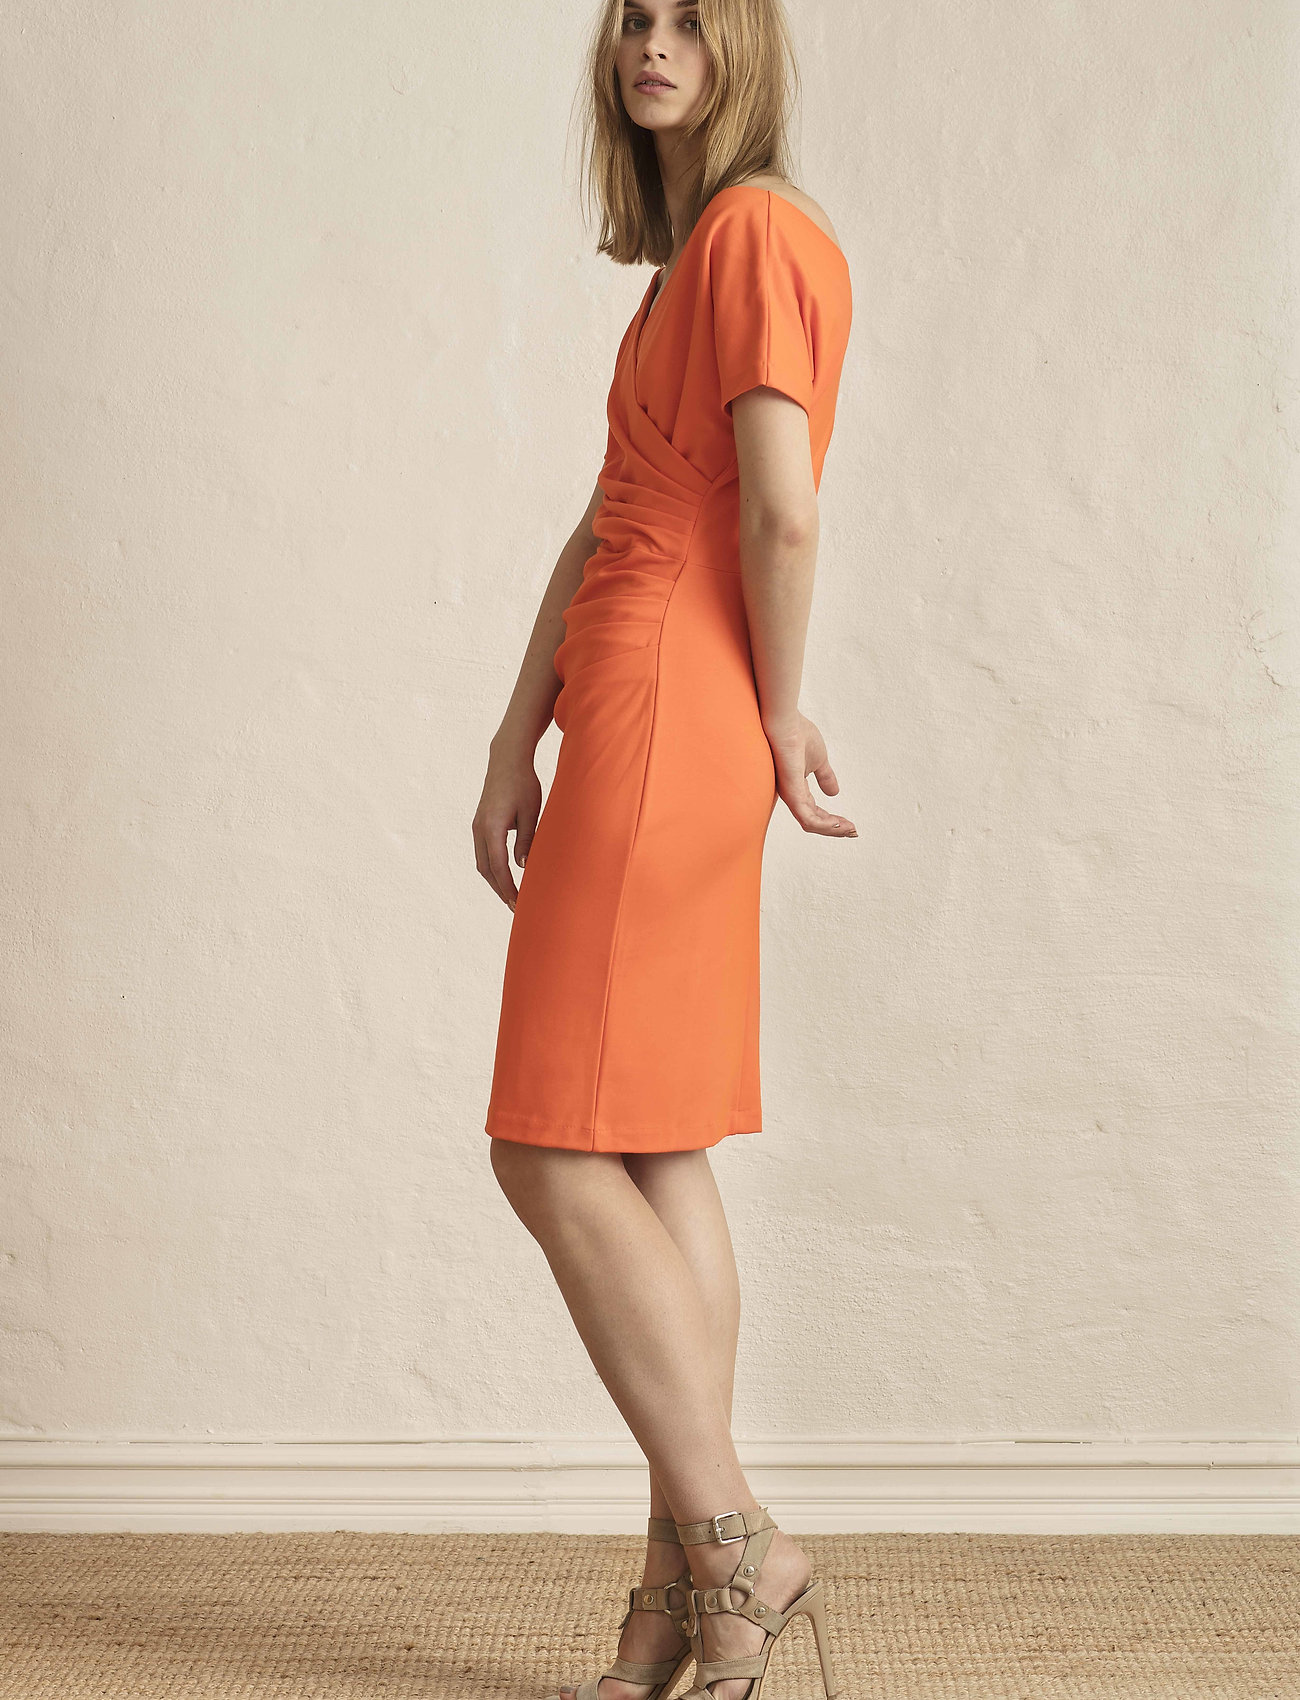 Residus    AVA DRESS  - Kleider    FLAME